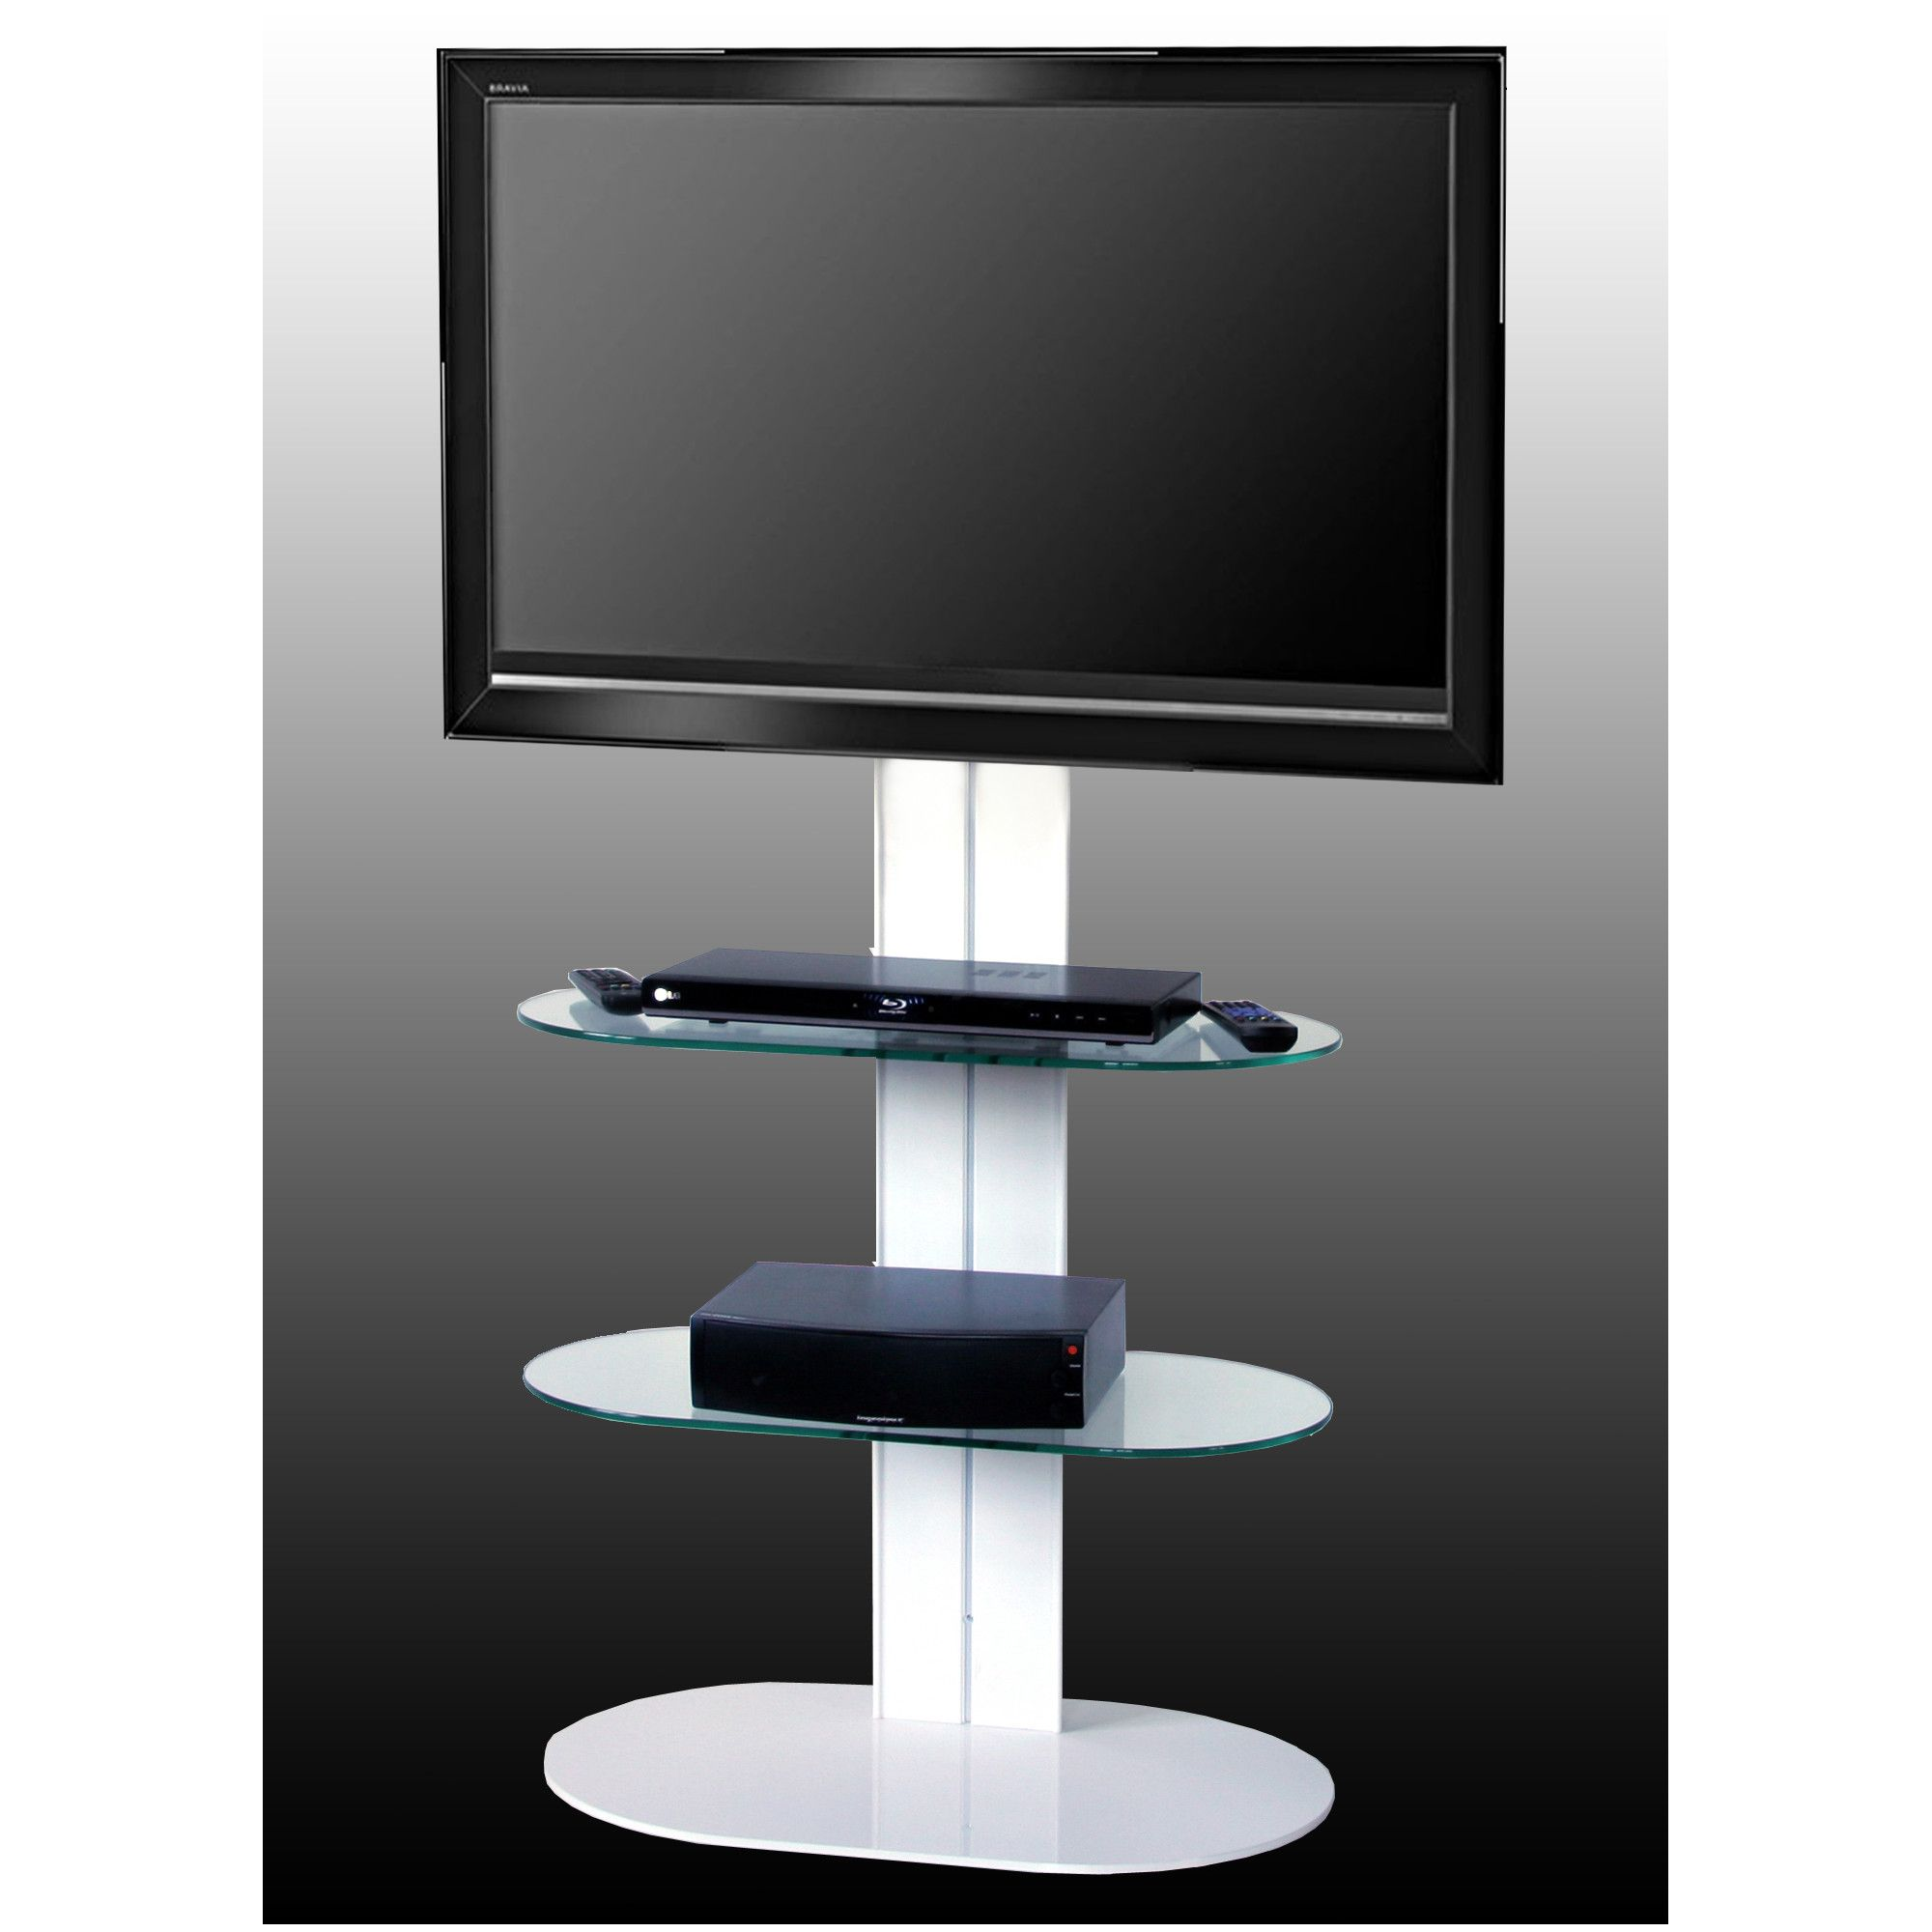 OMB Totem 1500 TV Stand - White at Tesco Direct